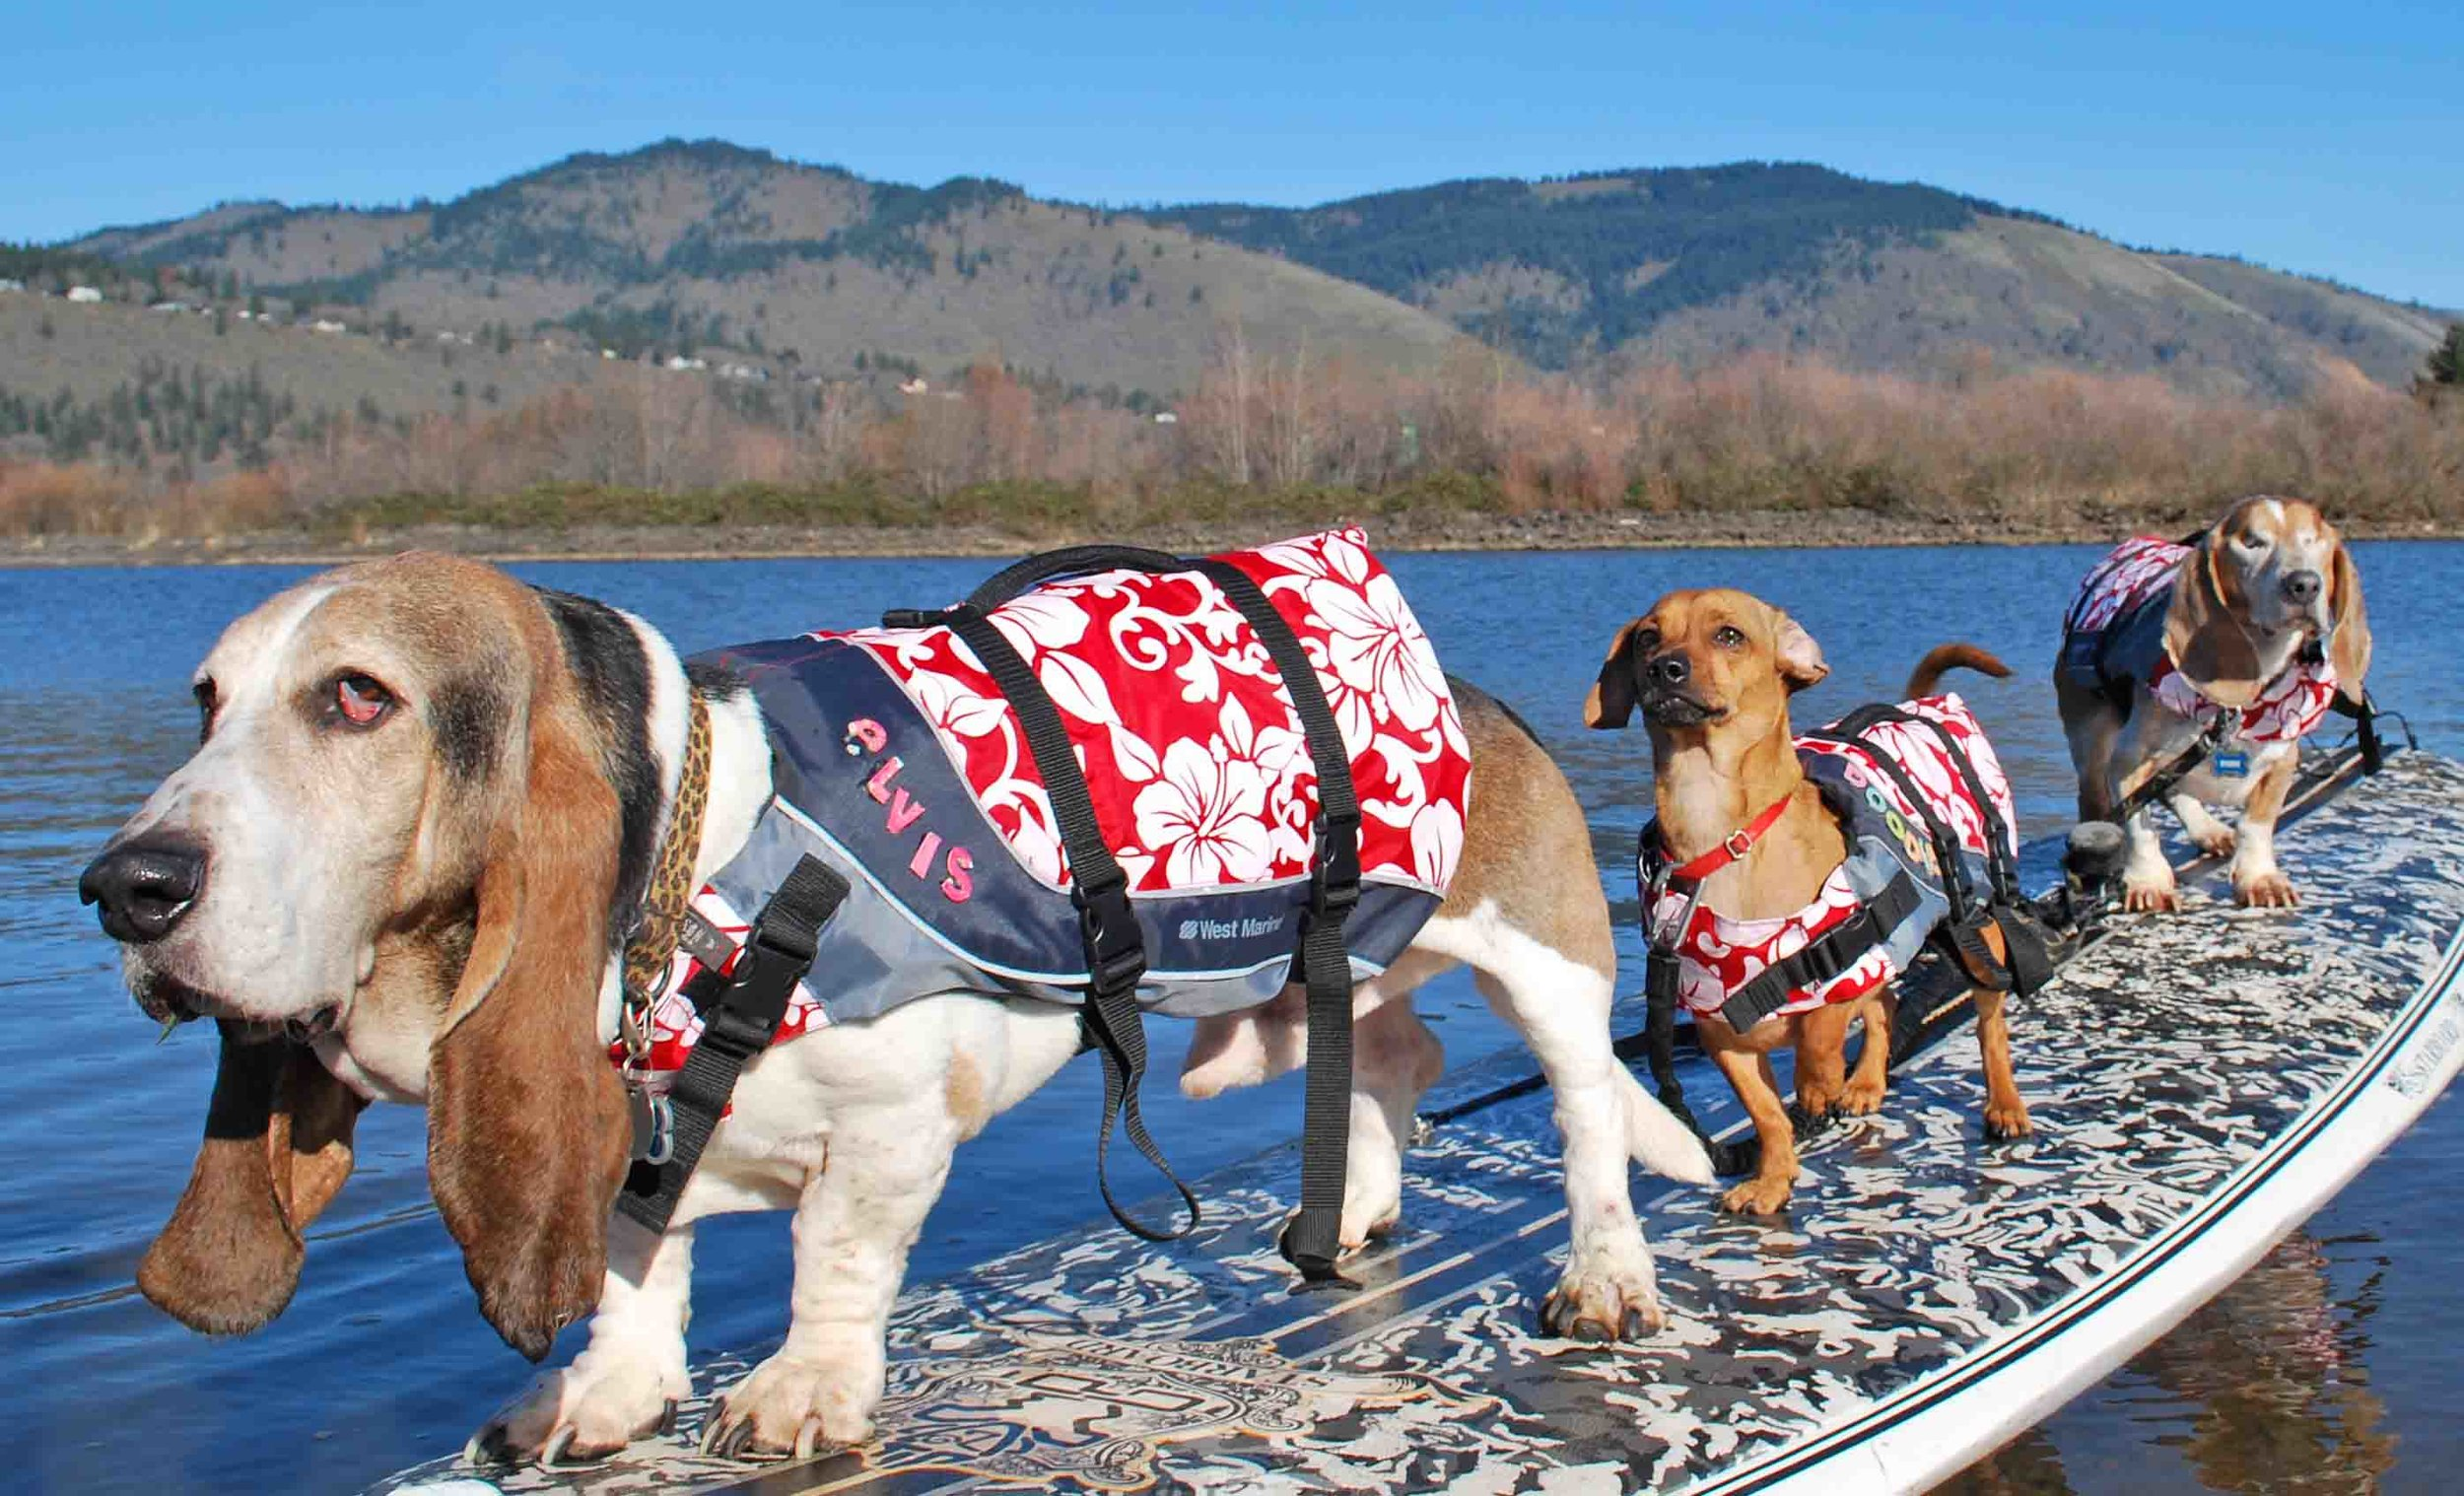 My 3 sons, SUP pups  on the Columbia River   (L to R): Elvis, Doodle, Dude                                         (c) BarbAyers, wwwDogDiary.org